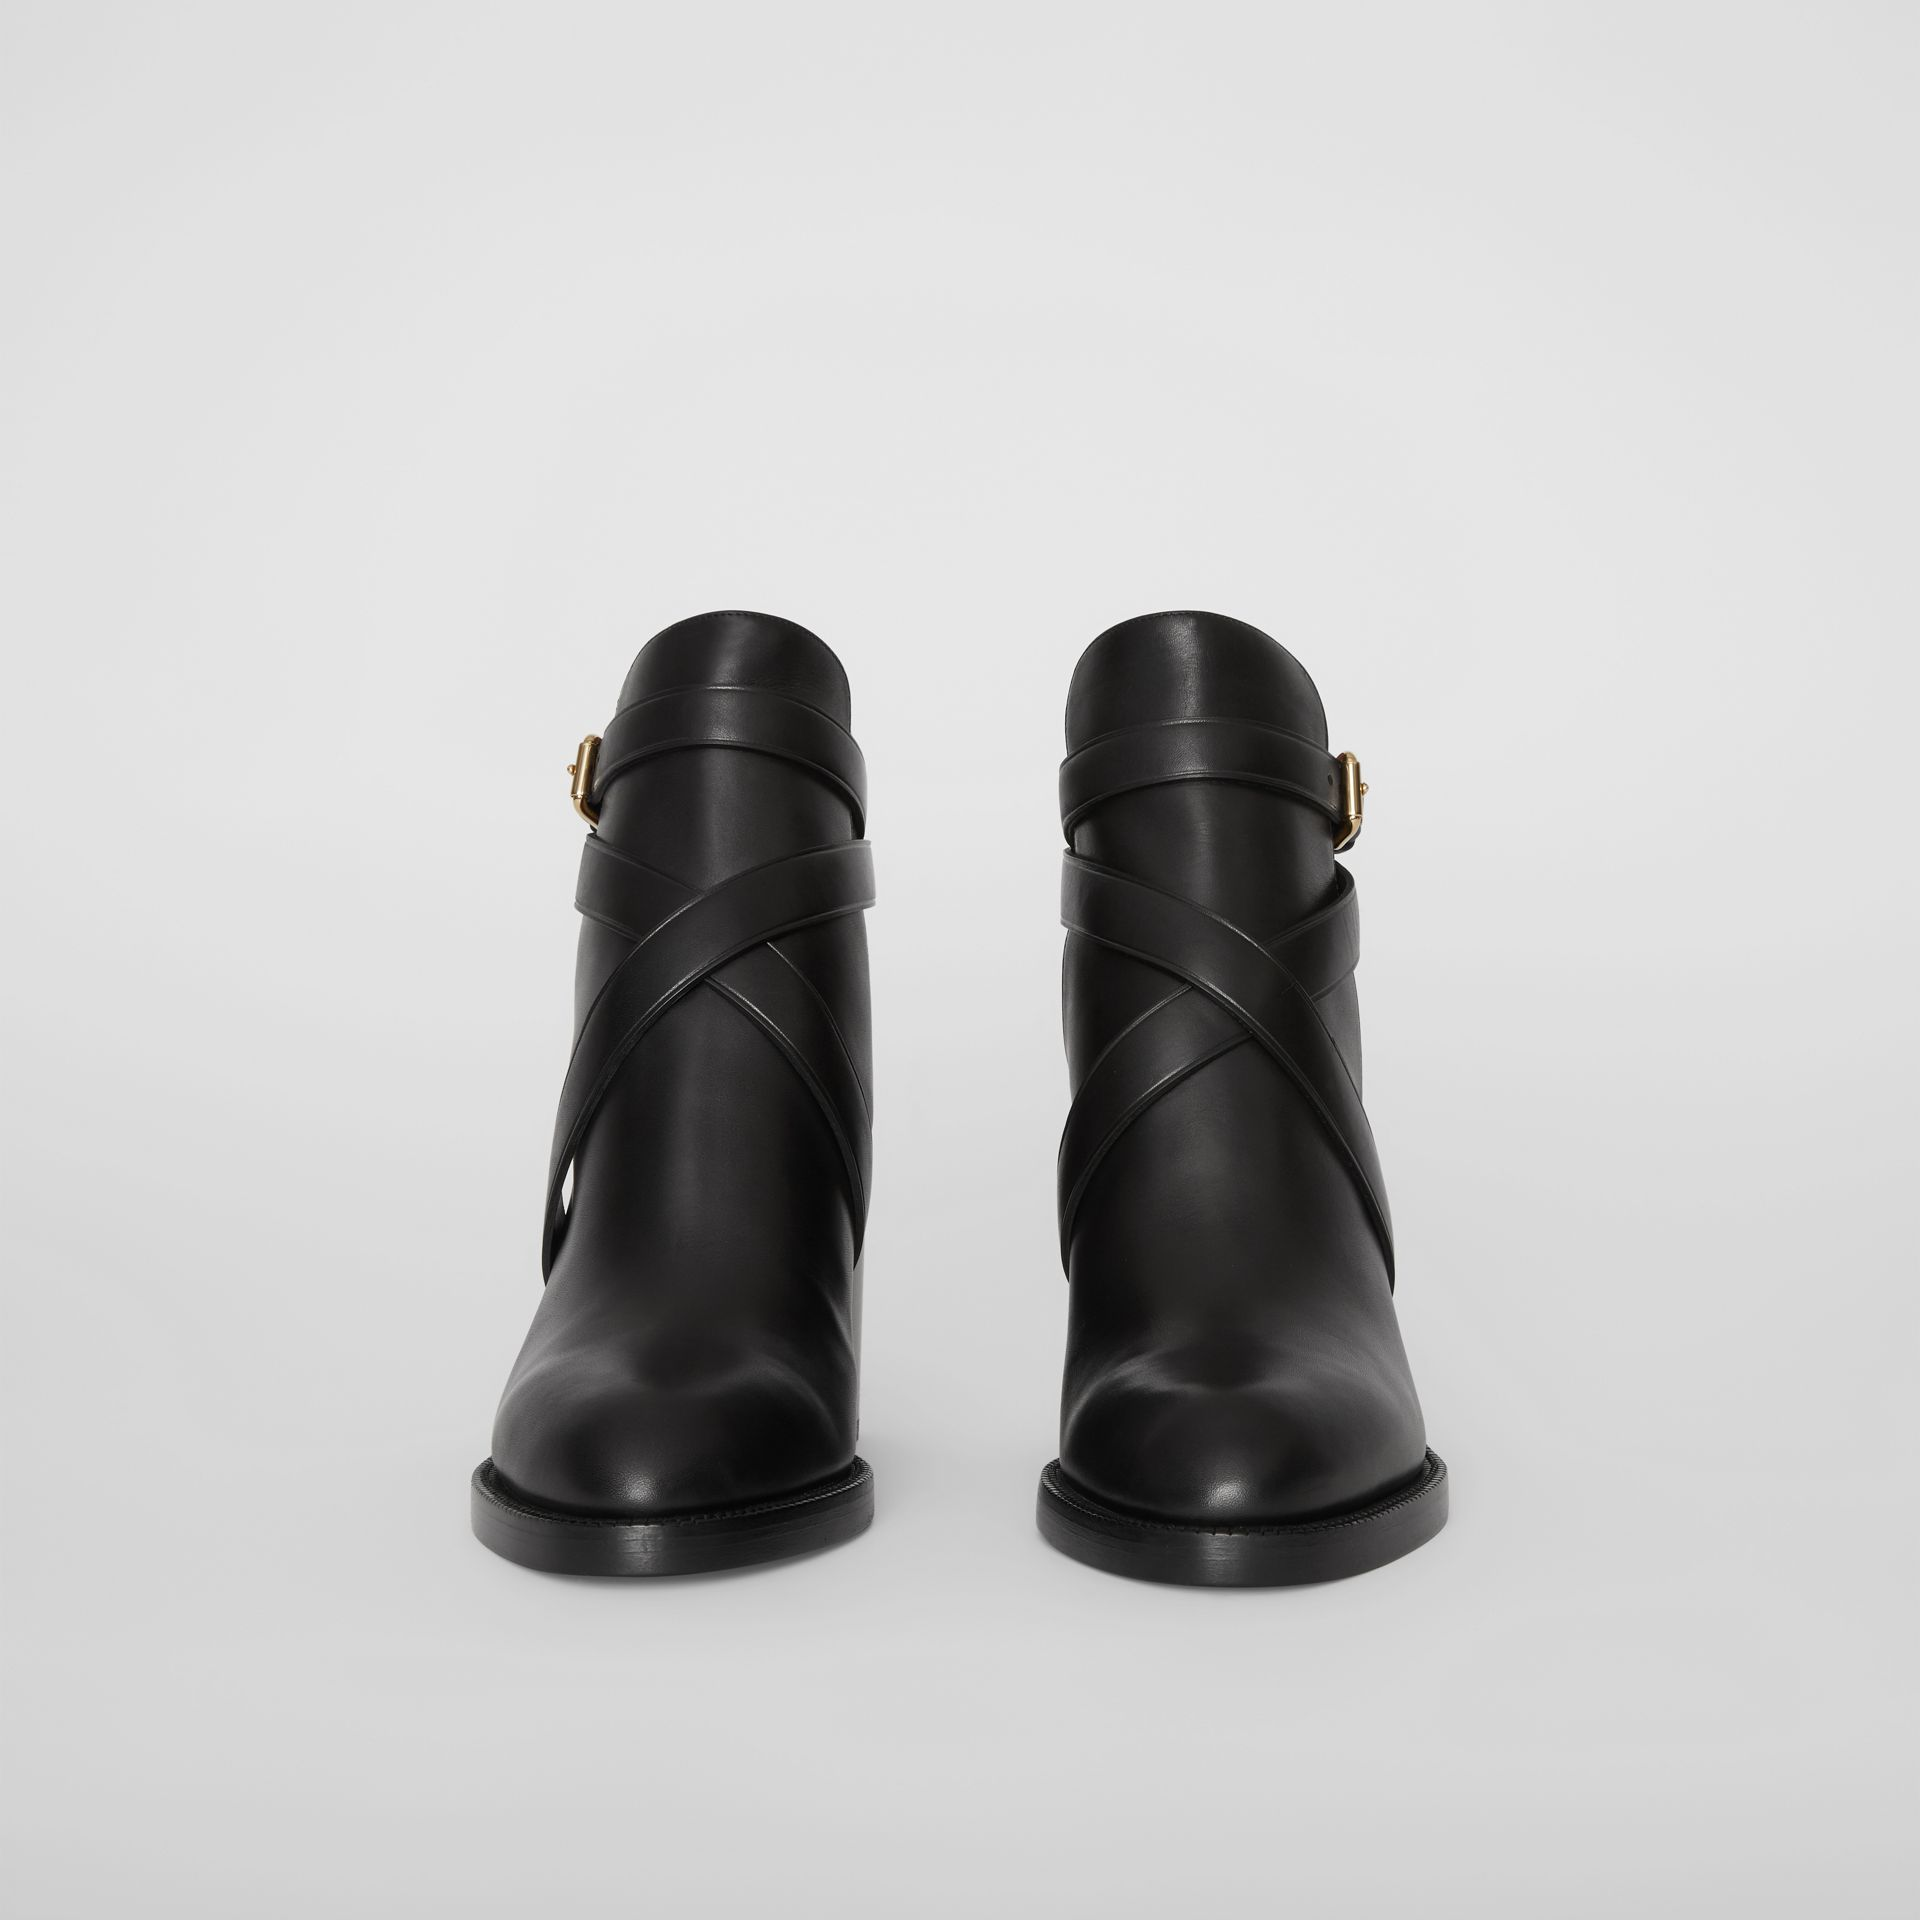 Bottines en cuir et coton House check (Noir) - Femme | Burberry - photo de la galerie 2